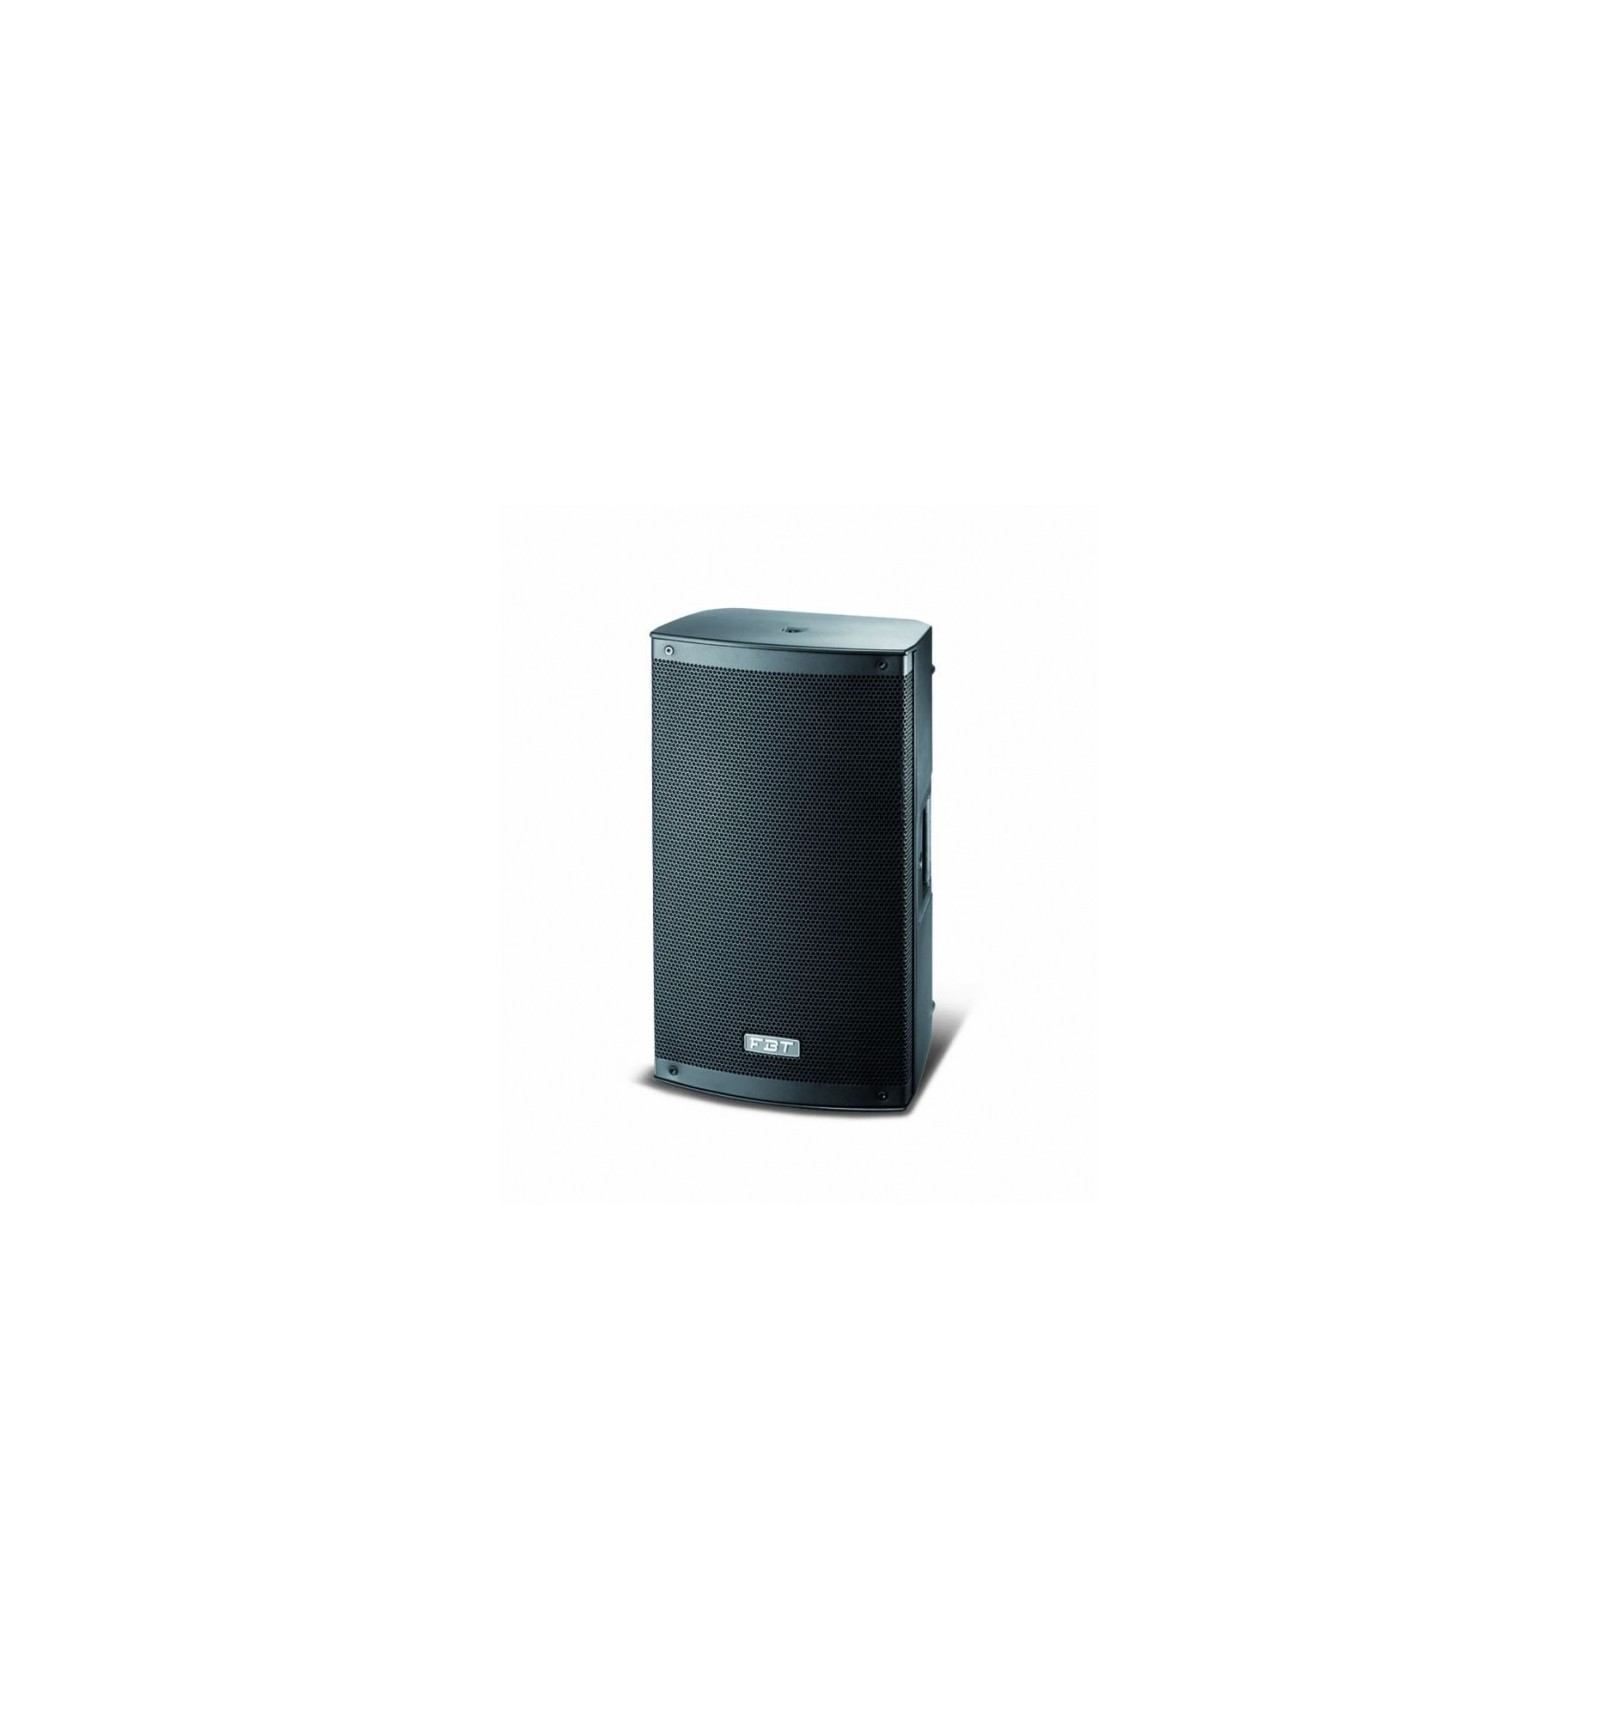 enceinte sono amplifi e fbt xlite 10a pour 374 17 planetsono. Black Bedroom Furniture Sets. Home Design Ideas